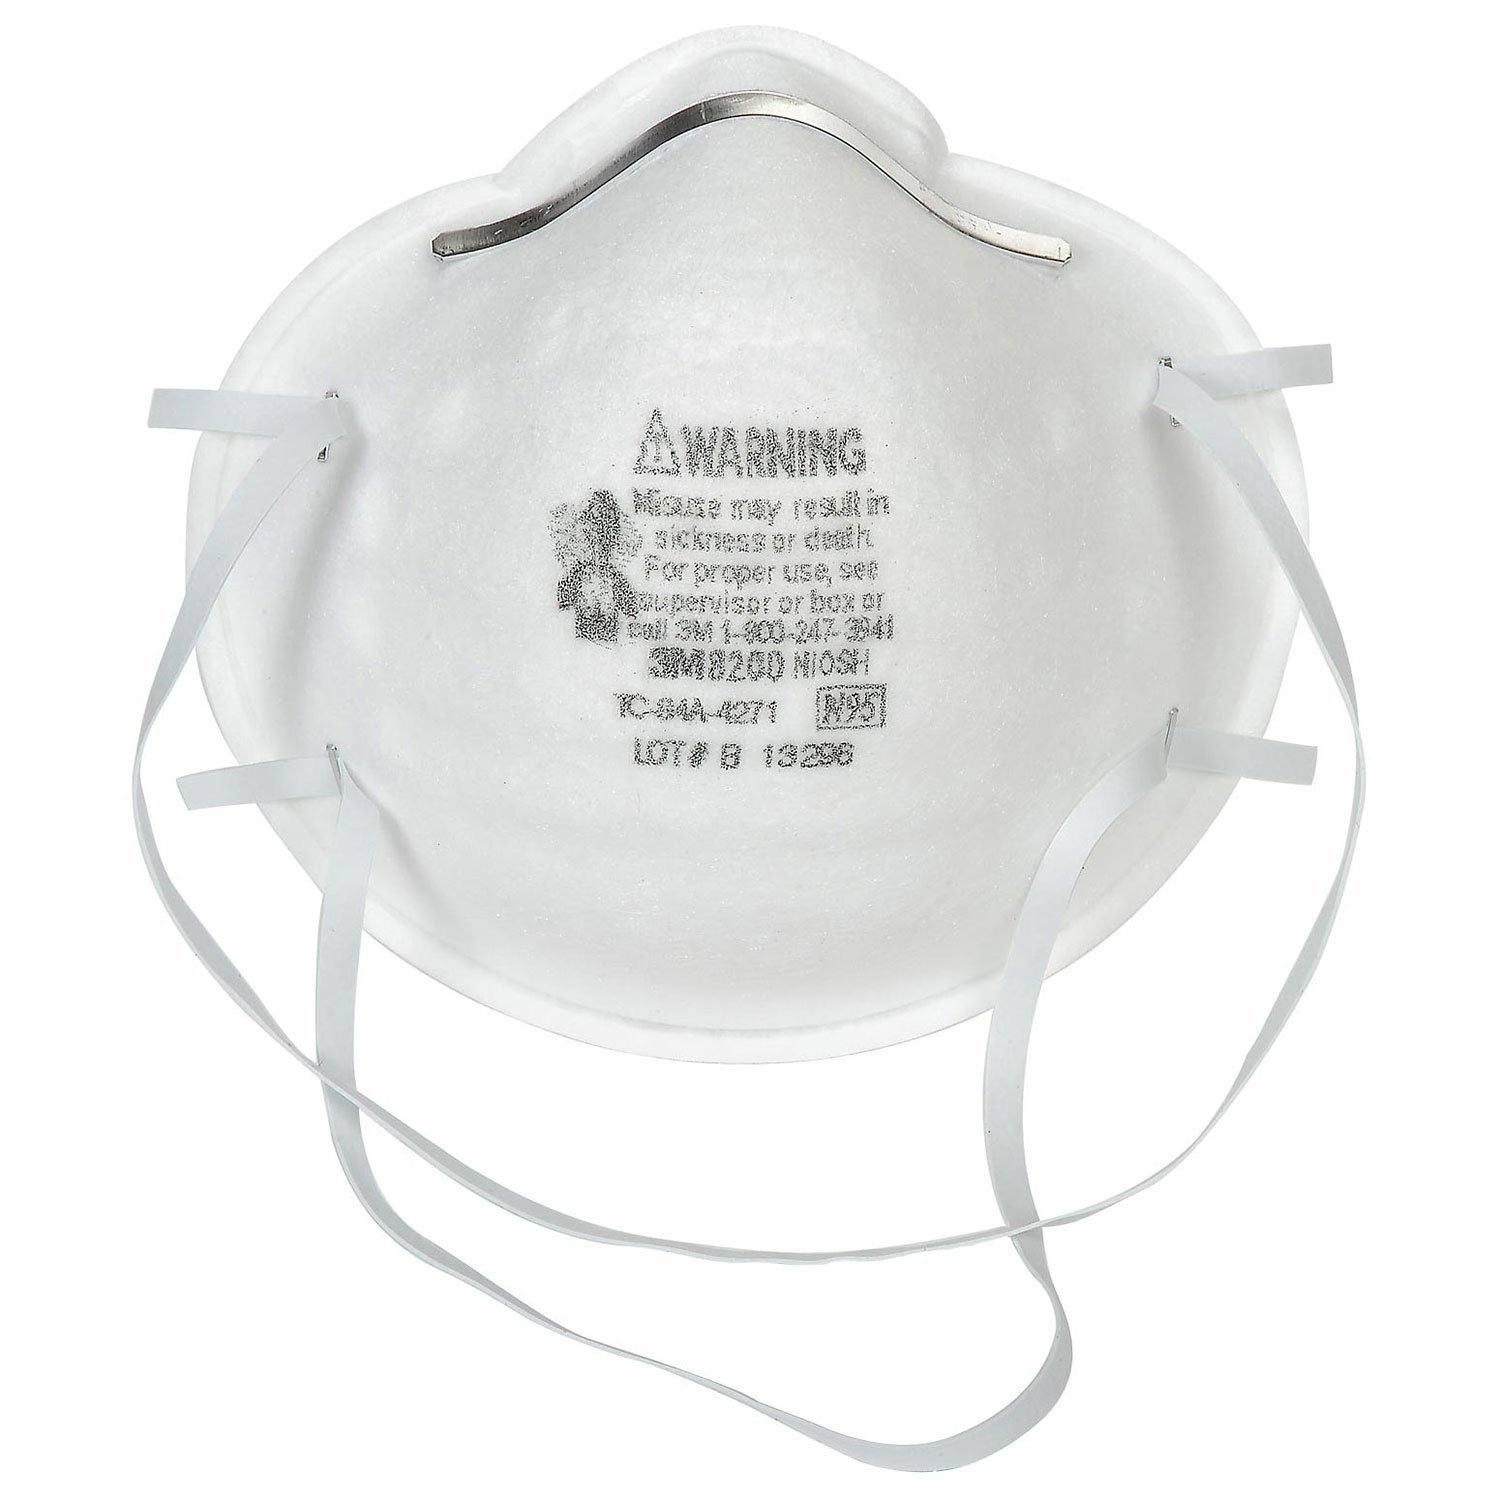 N95 Particulate Respirator, 8200 07023(AAD), 20 Bx, By 3M by